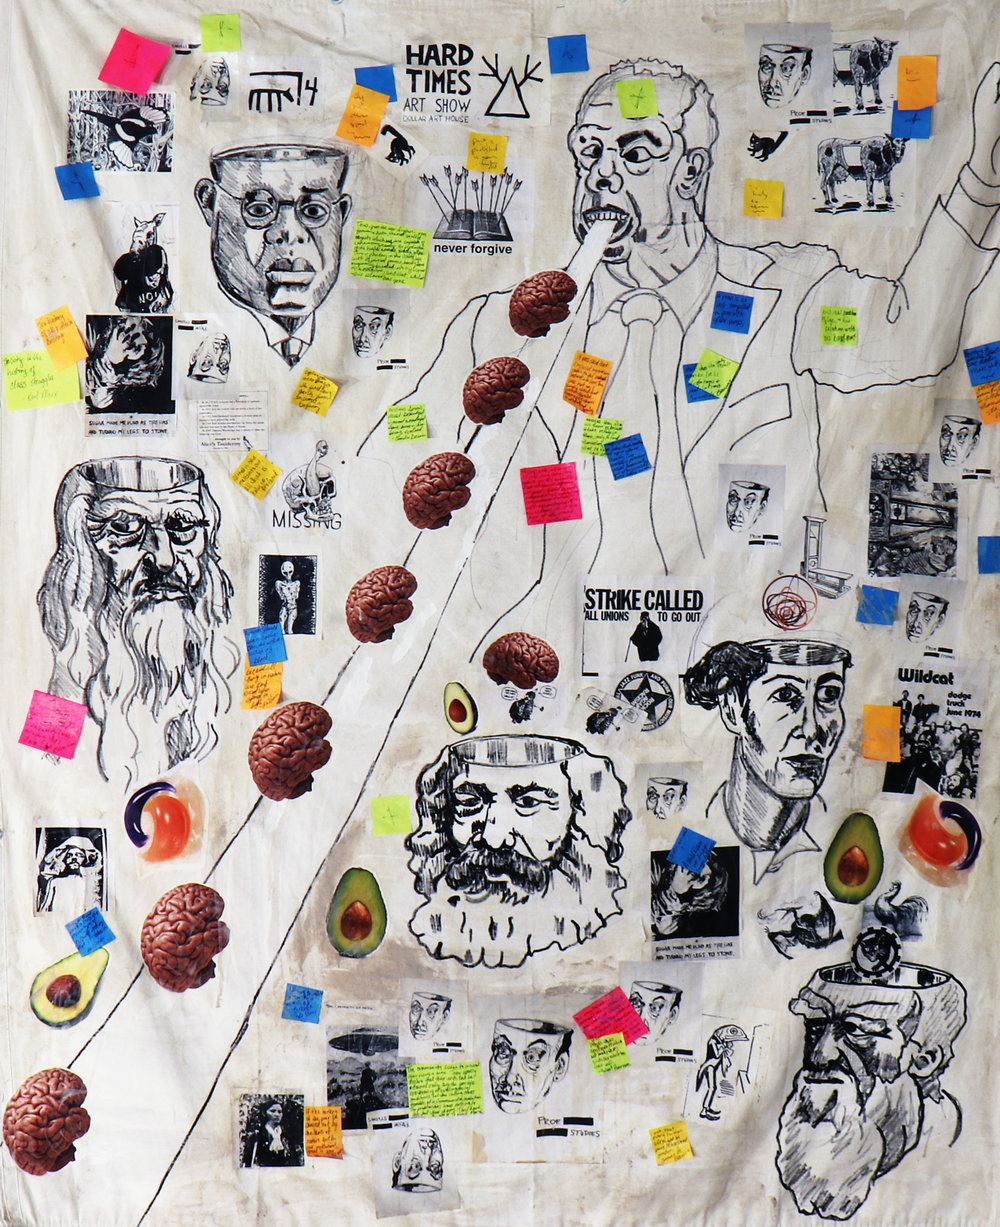 Erasure Chancellor / Carlo Montemagno Eats Brains (2018). Acrylic, marker, stickers, coffee, buttons, clay, post-it notes and mixed media on canvas tarp. Medium Poster: $23.32